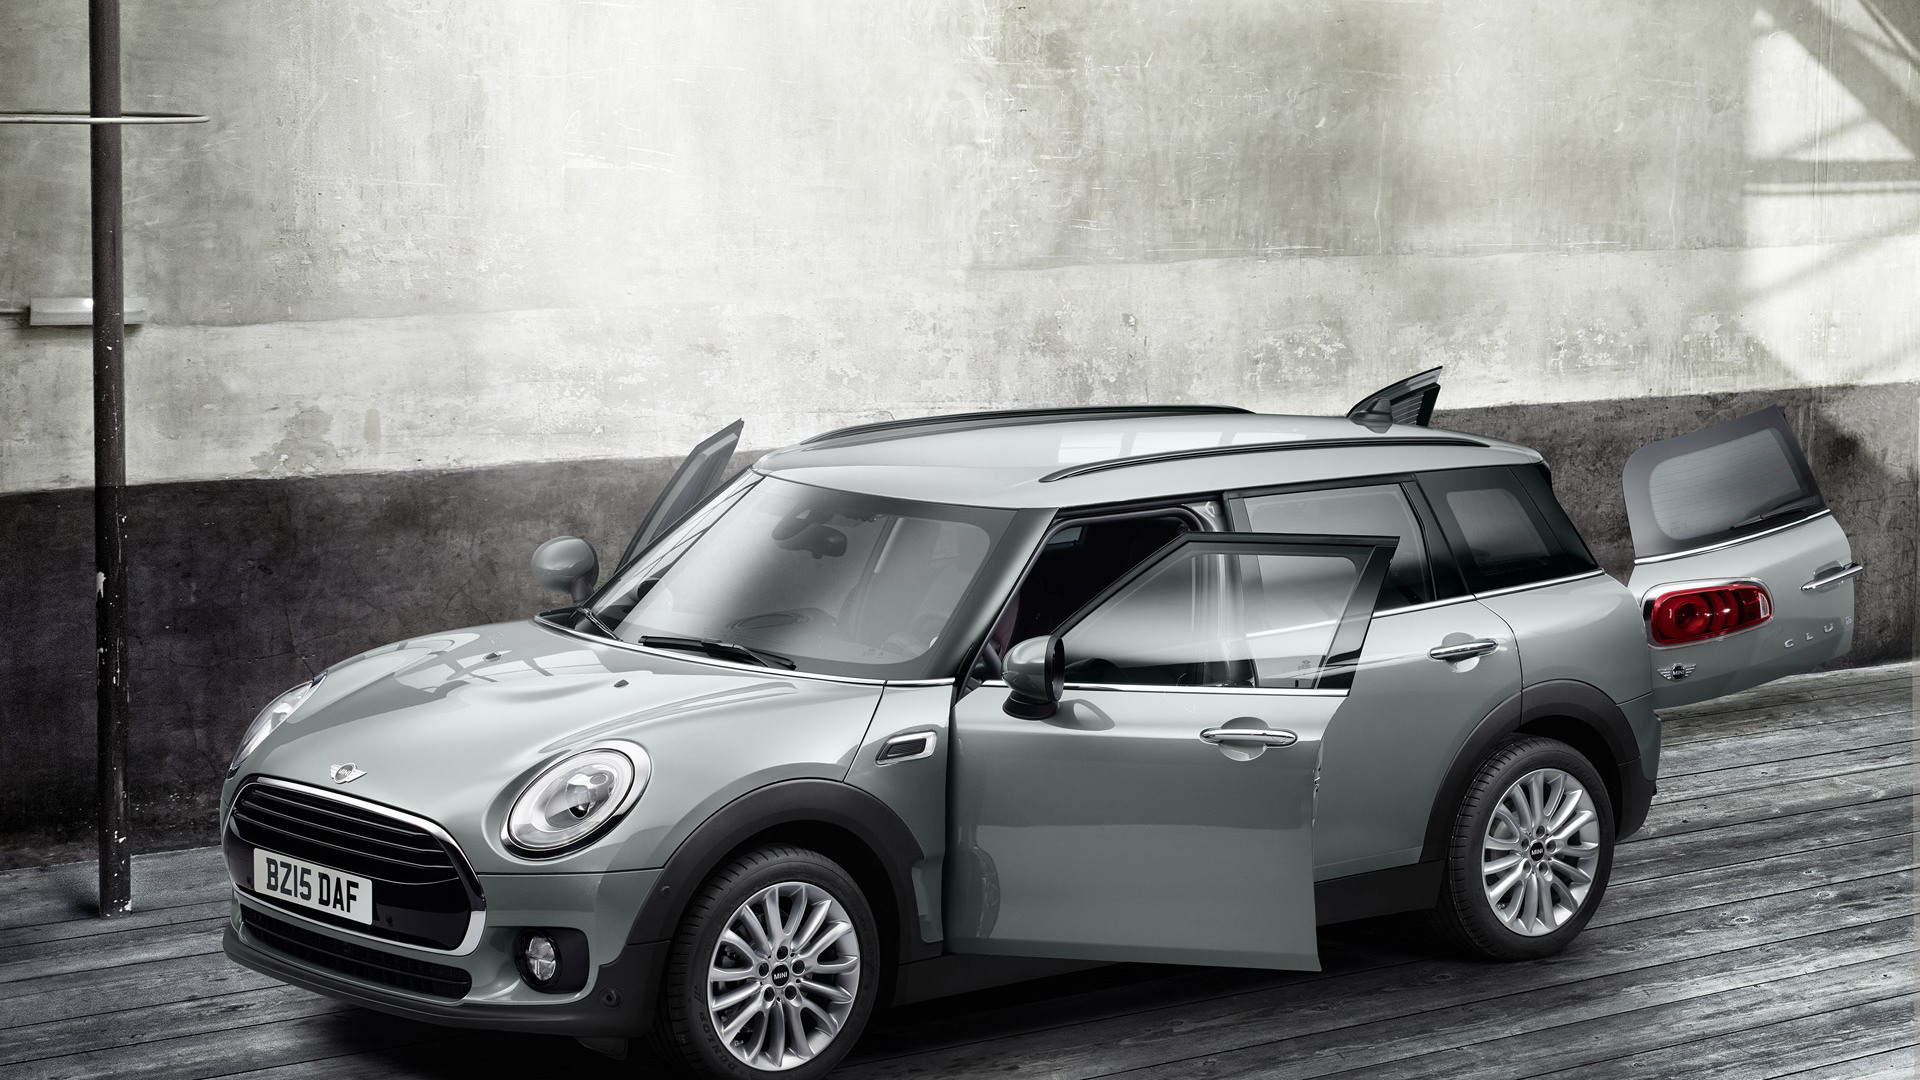 2016 Mini Cooper Clubman Grows Up Into More Maxi Wagon With Six Doors